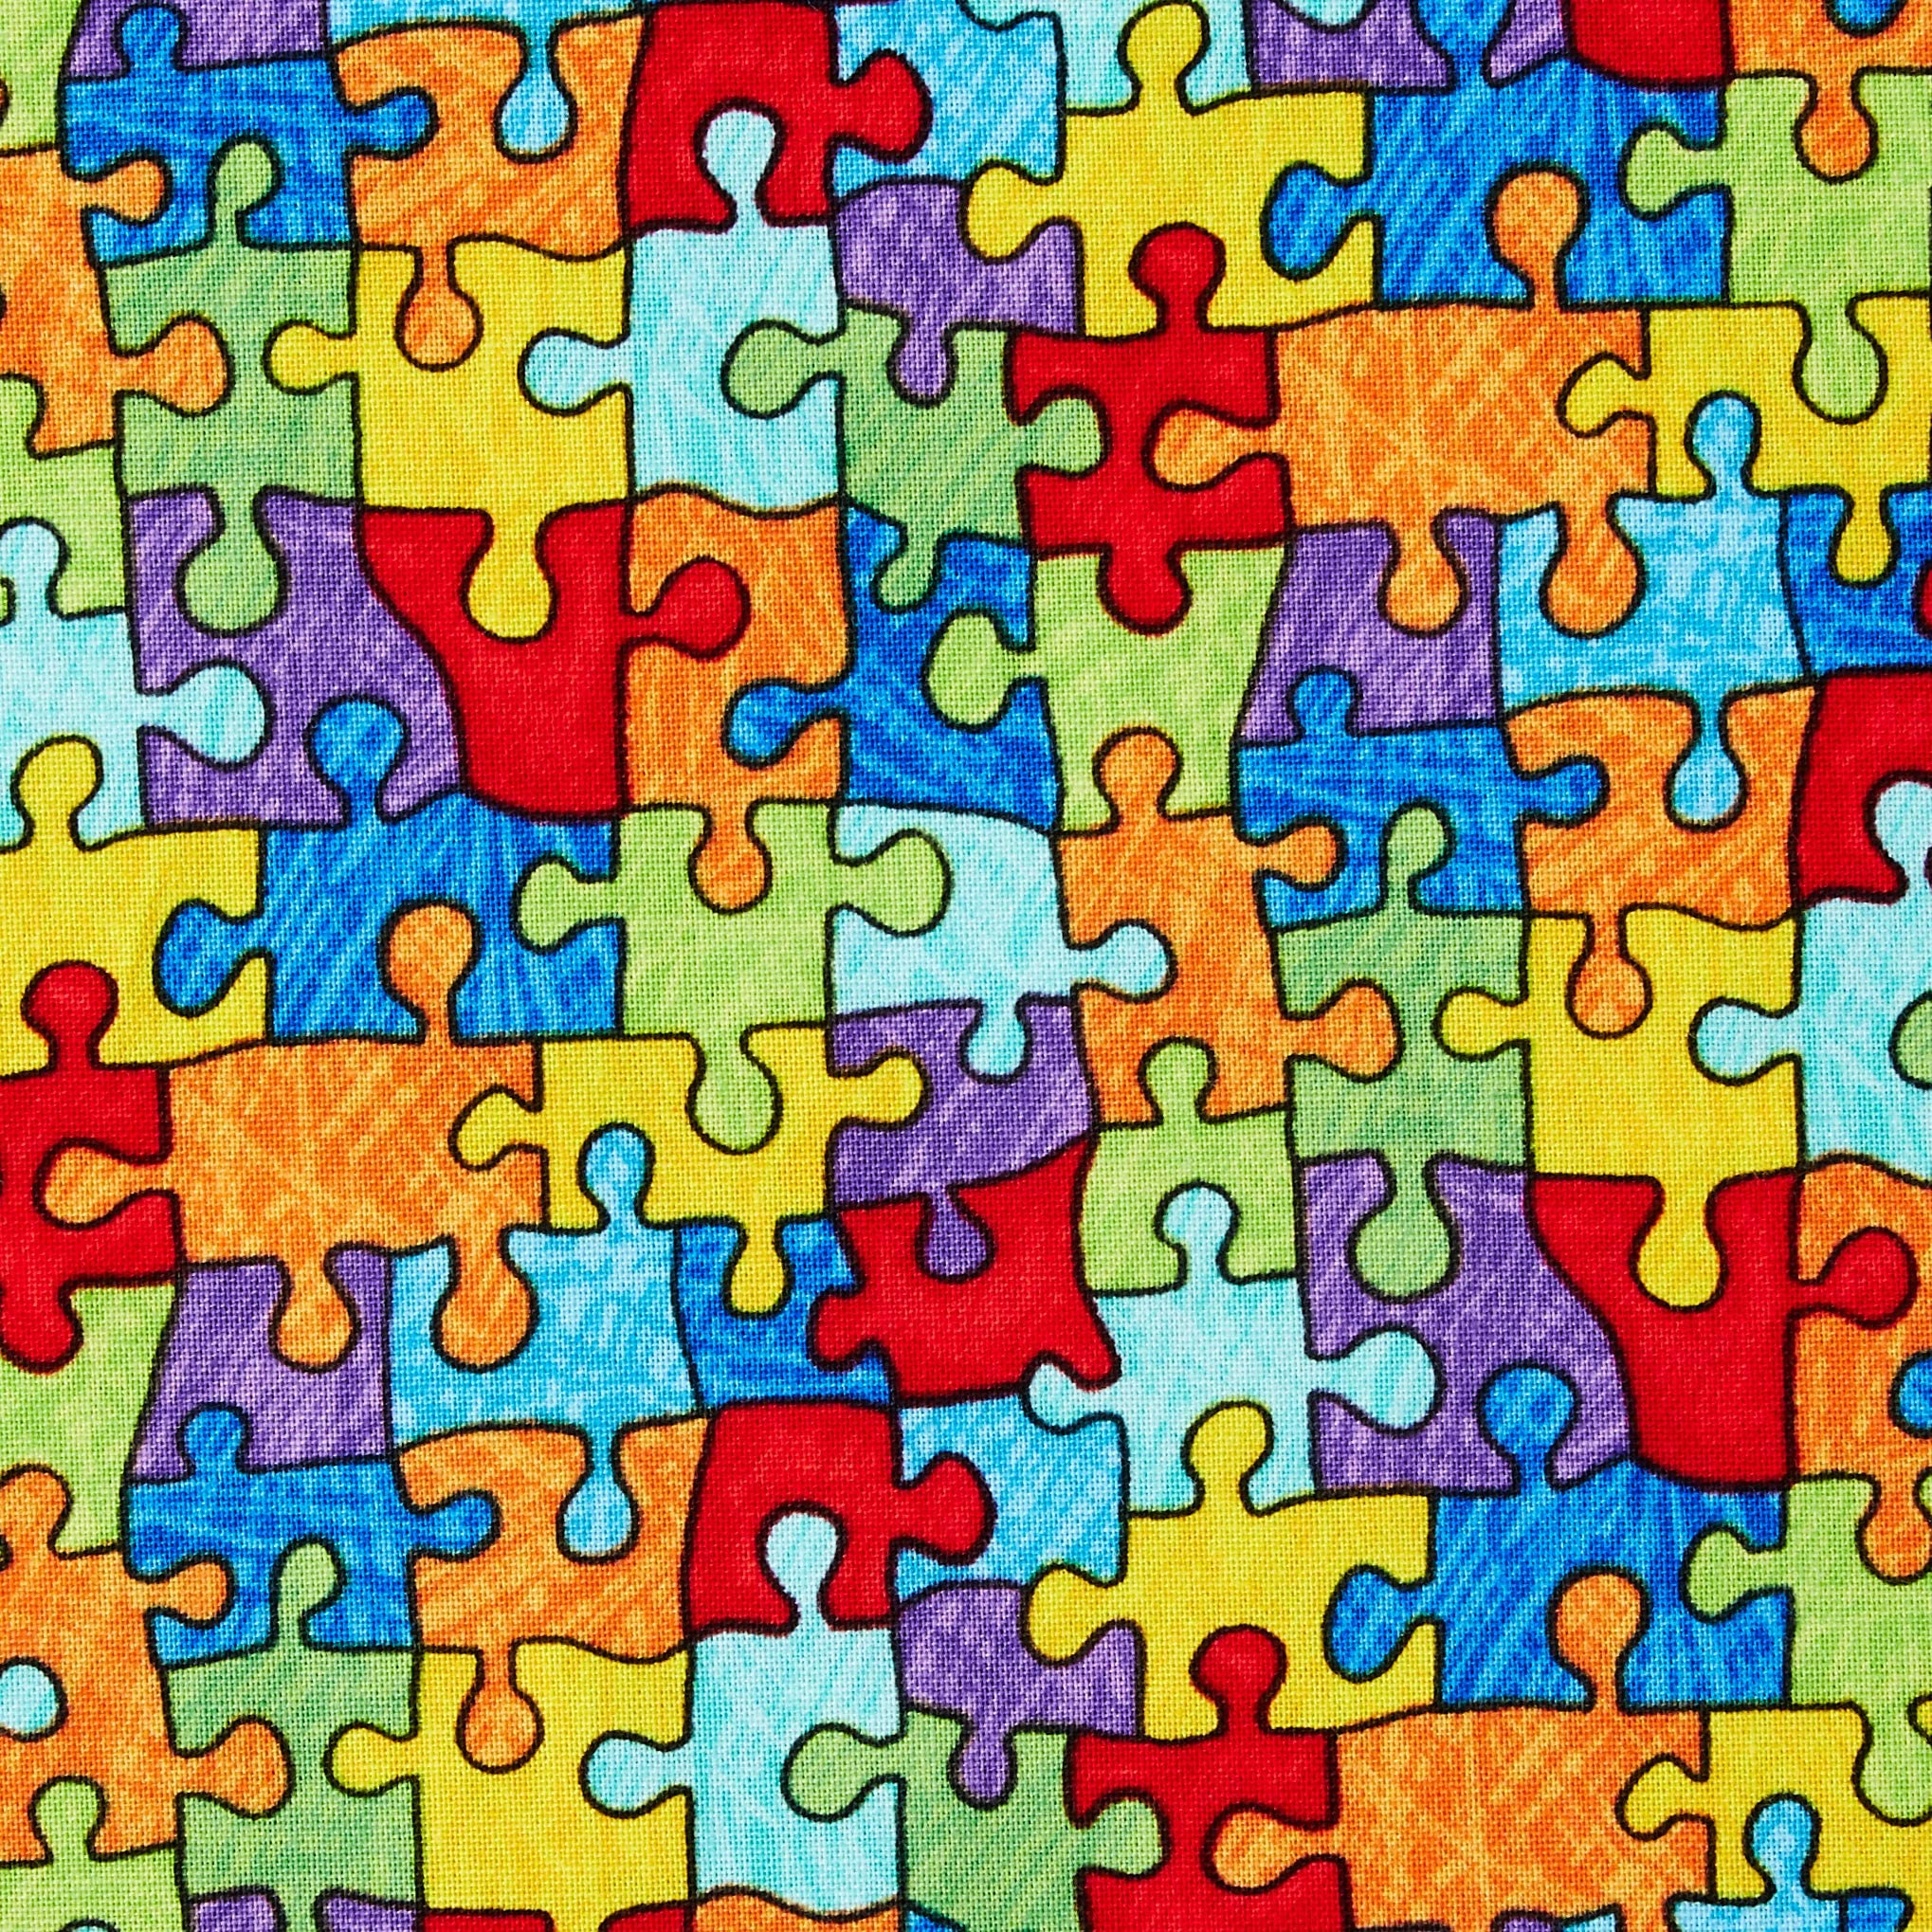 Autism Awareness Special Needs Teacher Puzzle Pieces Fabric Fat Quarters Cotton Precut Fabric Back to School Mask Making Fabric Sale